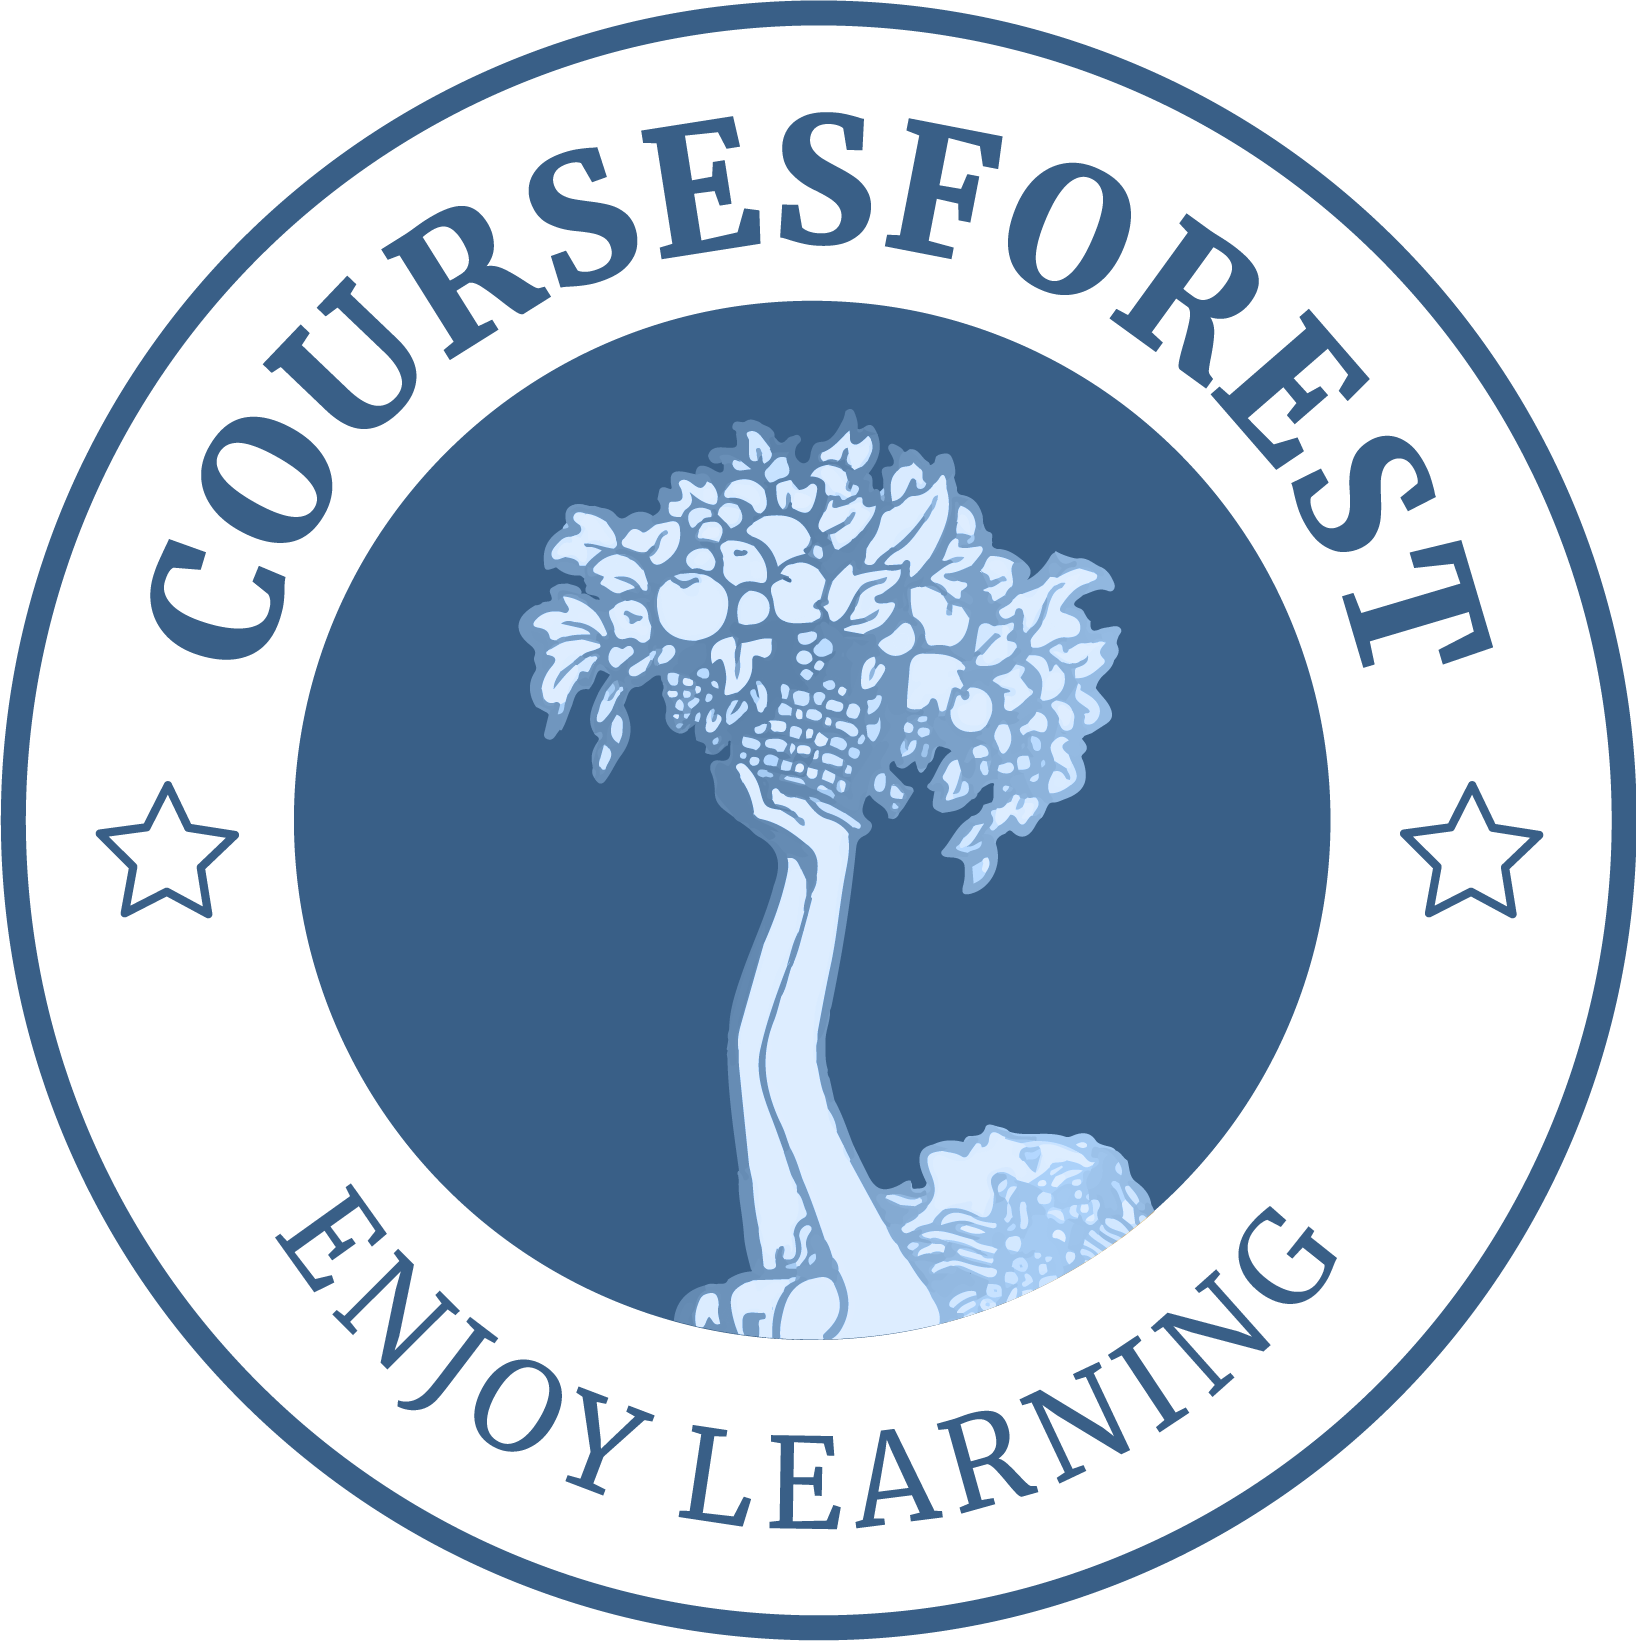 Courses Forest